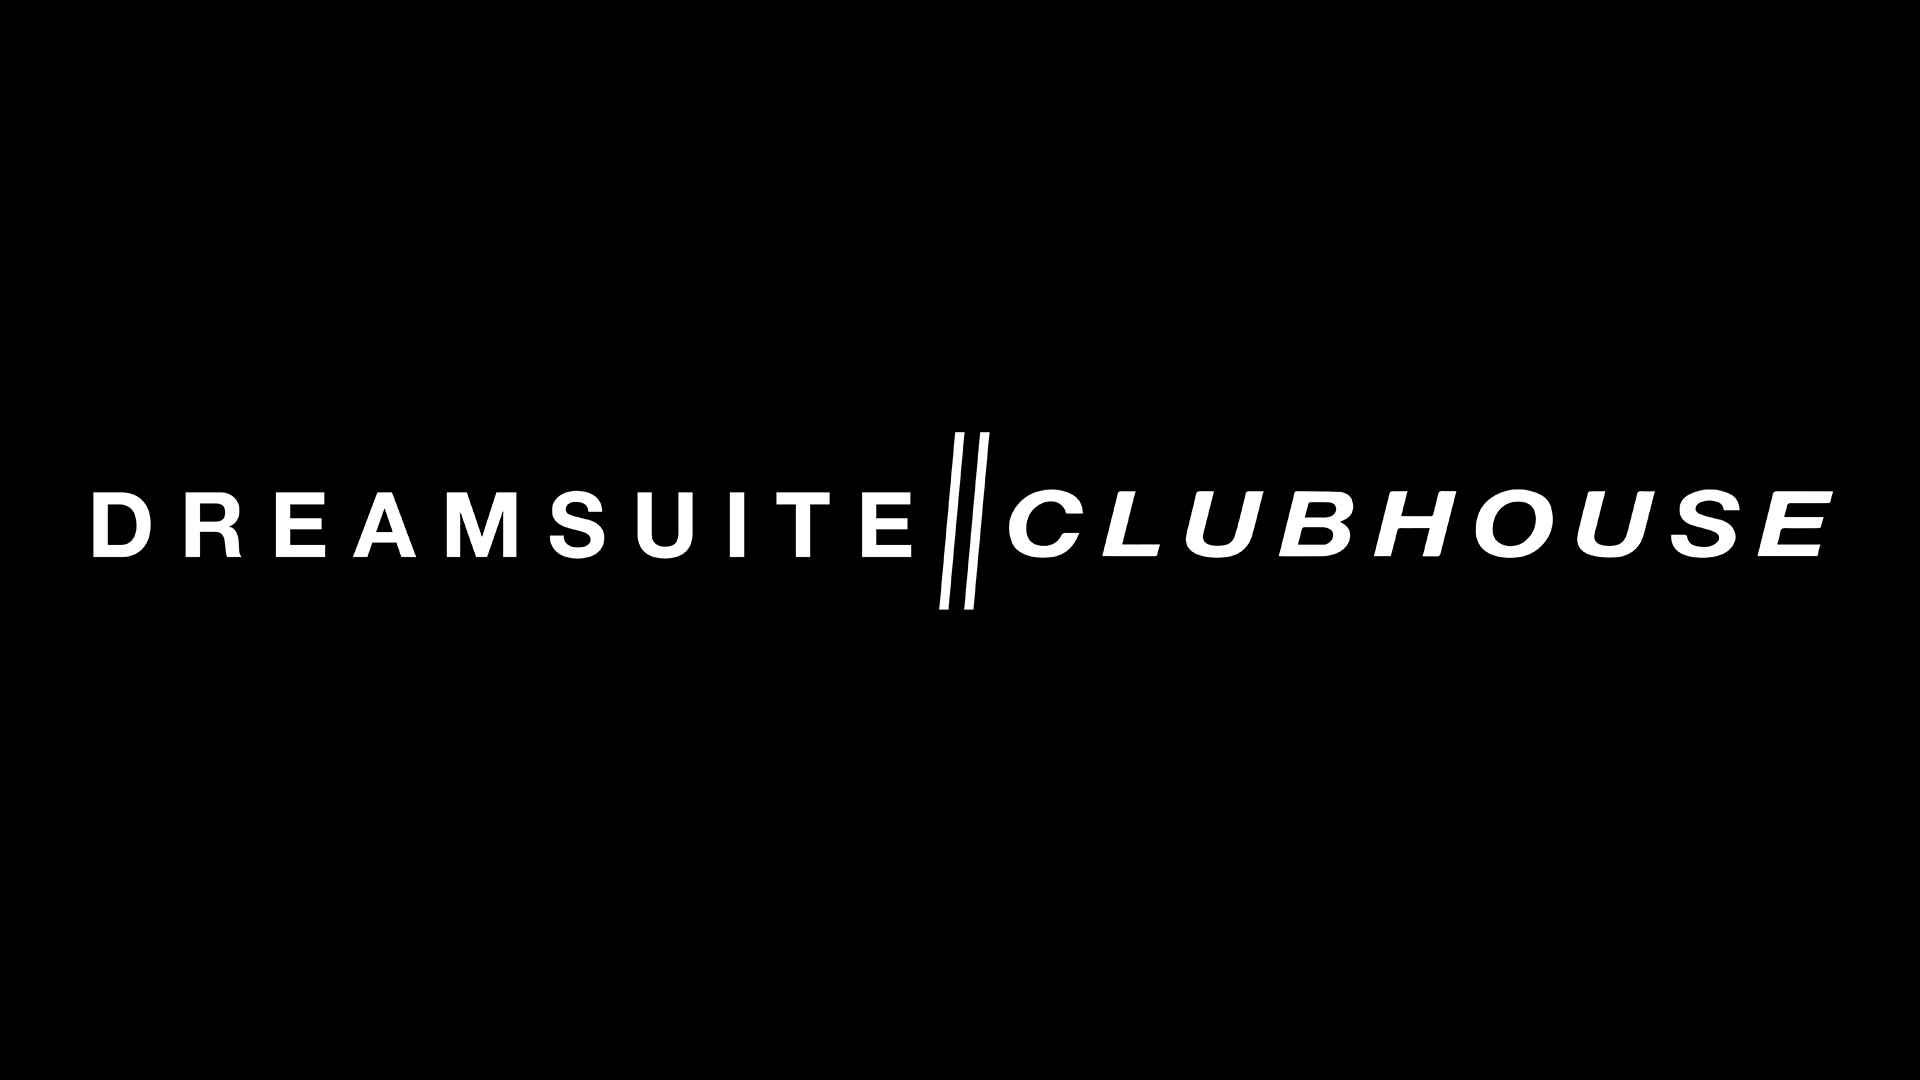 'Dreamsuite // Clubhouse' Logo